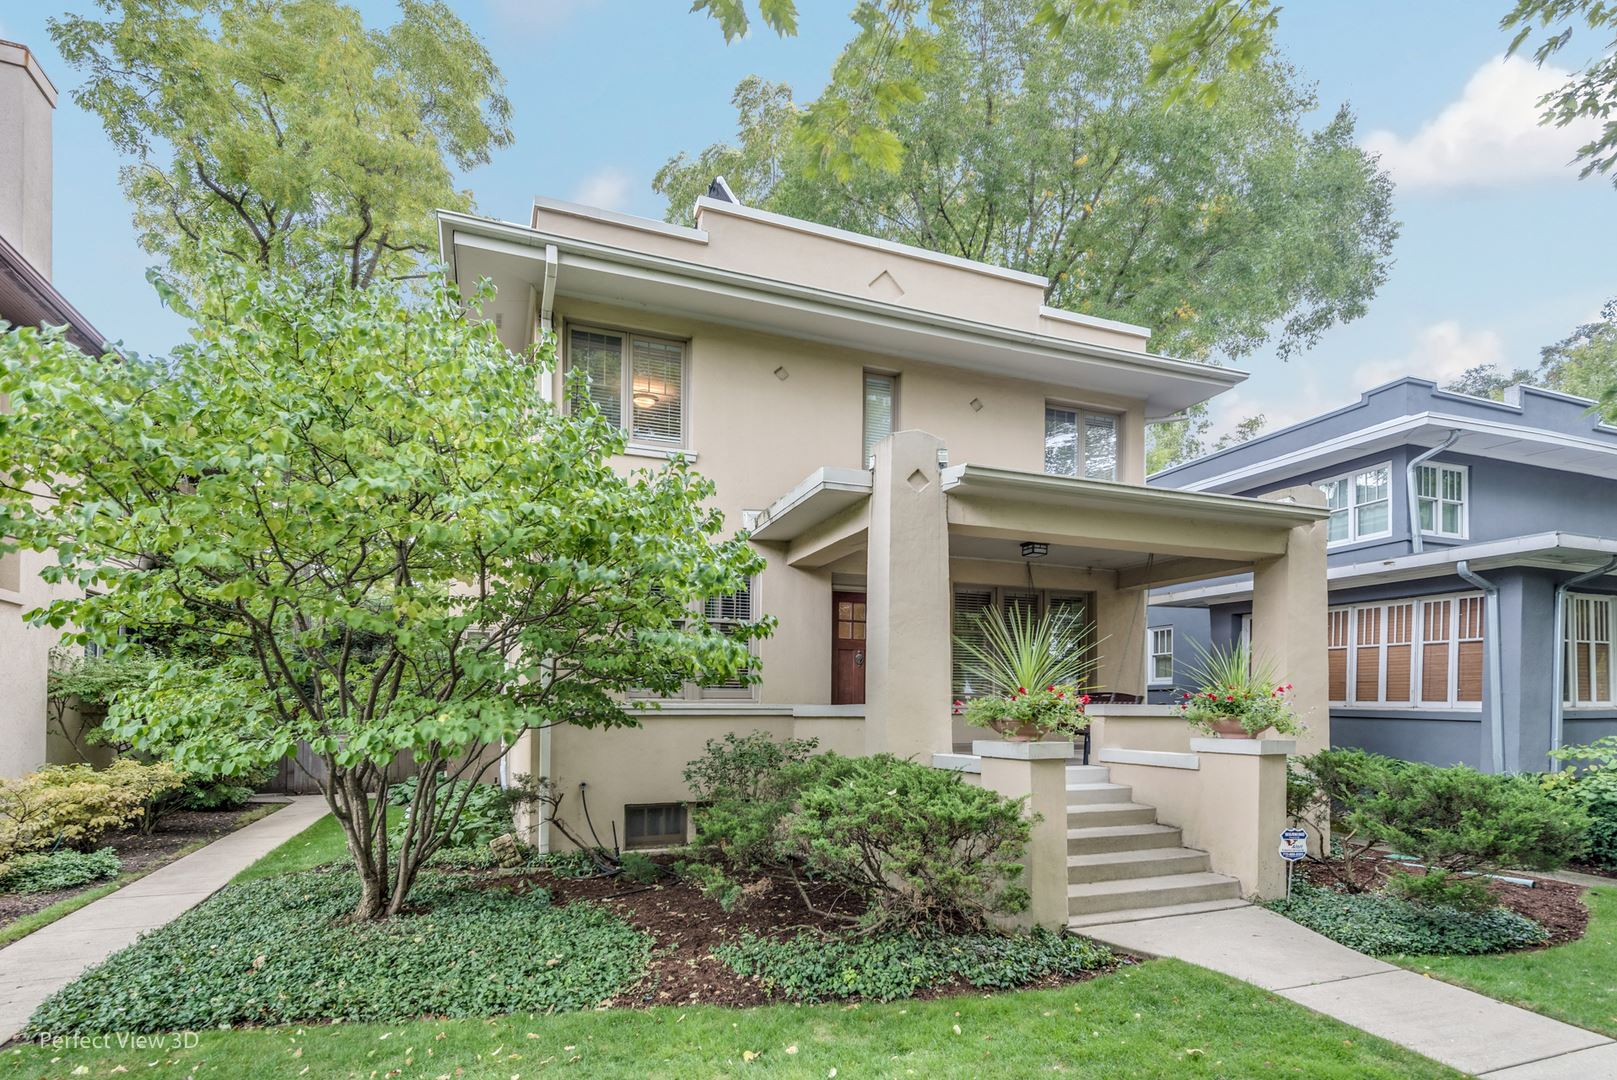 Photo for 318 14th Street, Wilmette, IL 60091 (MLS # 10841247)